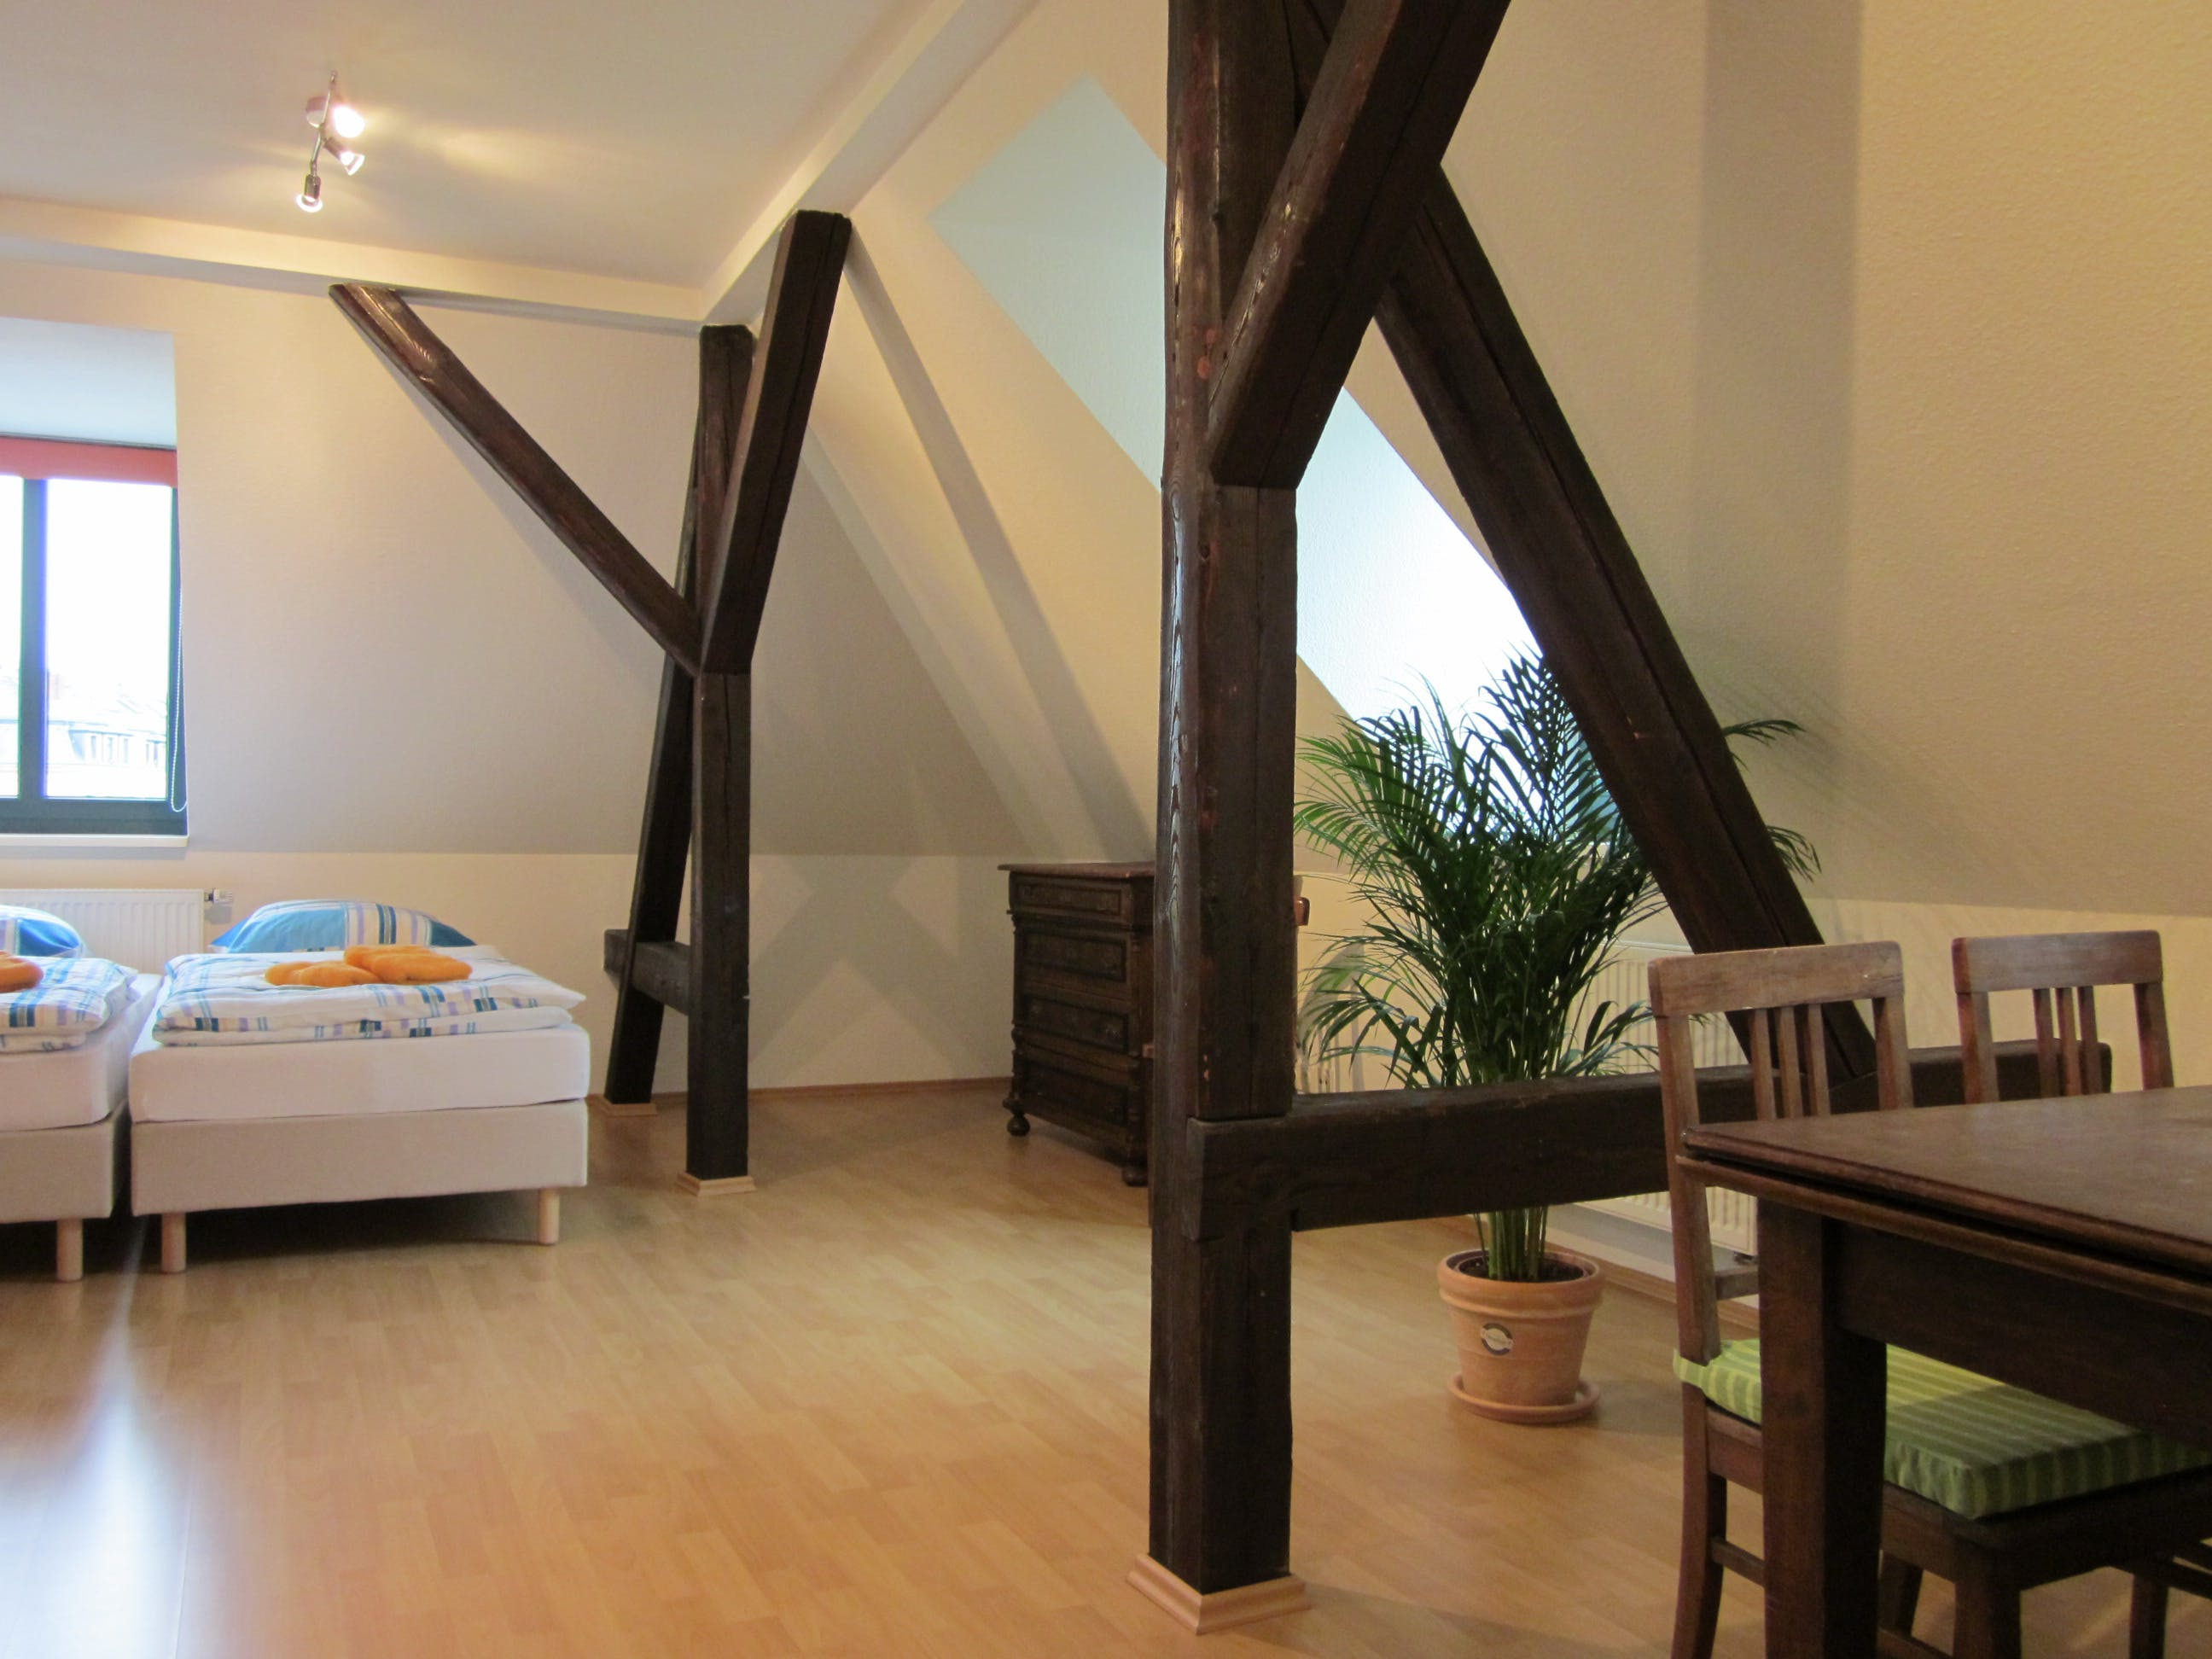 Villa Barbara Dresden - apartment with 2 bed rooms attic